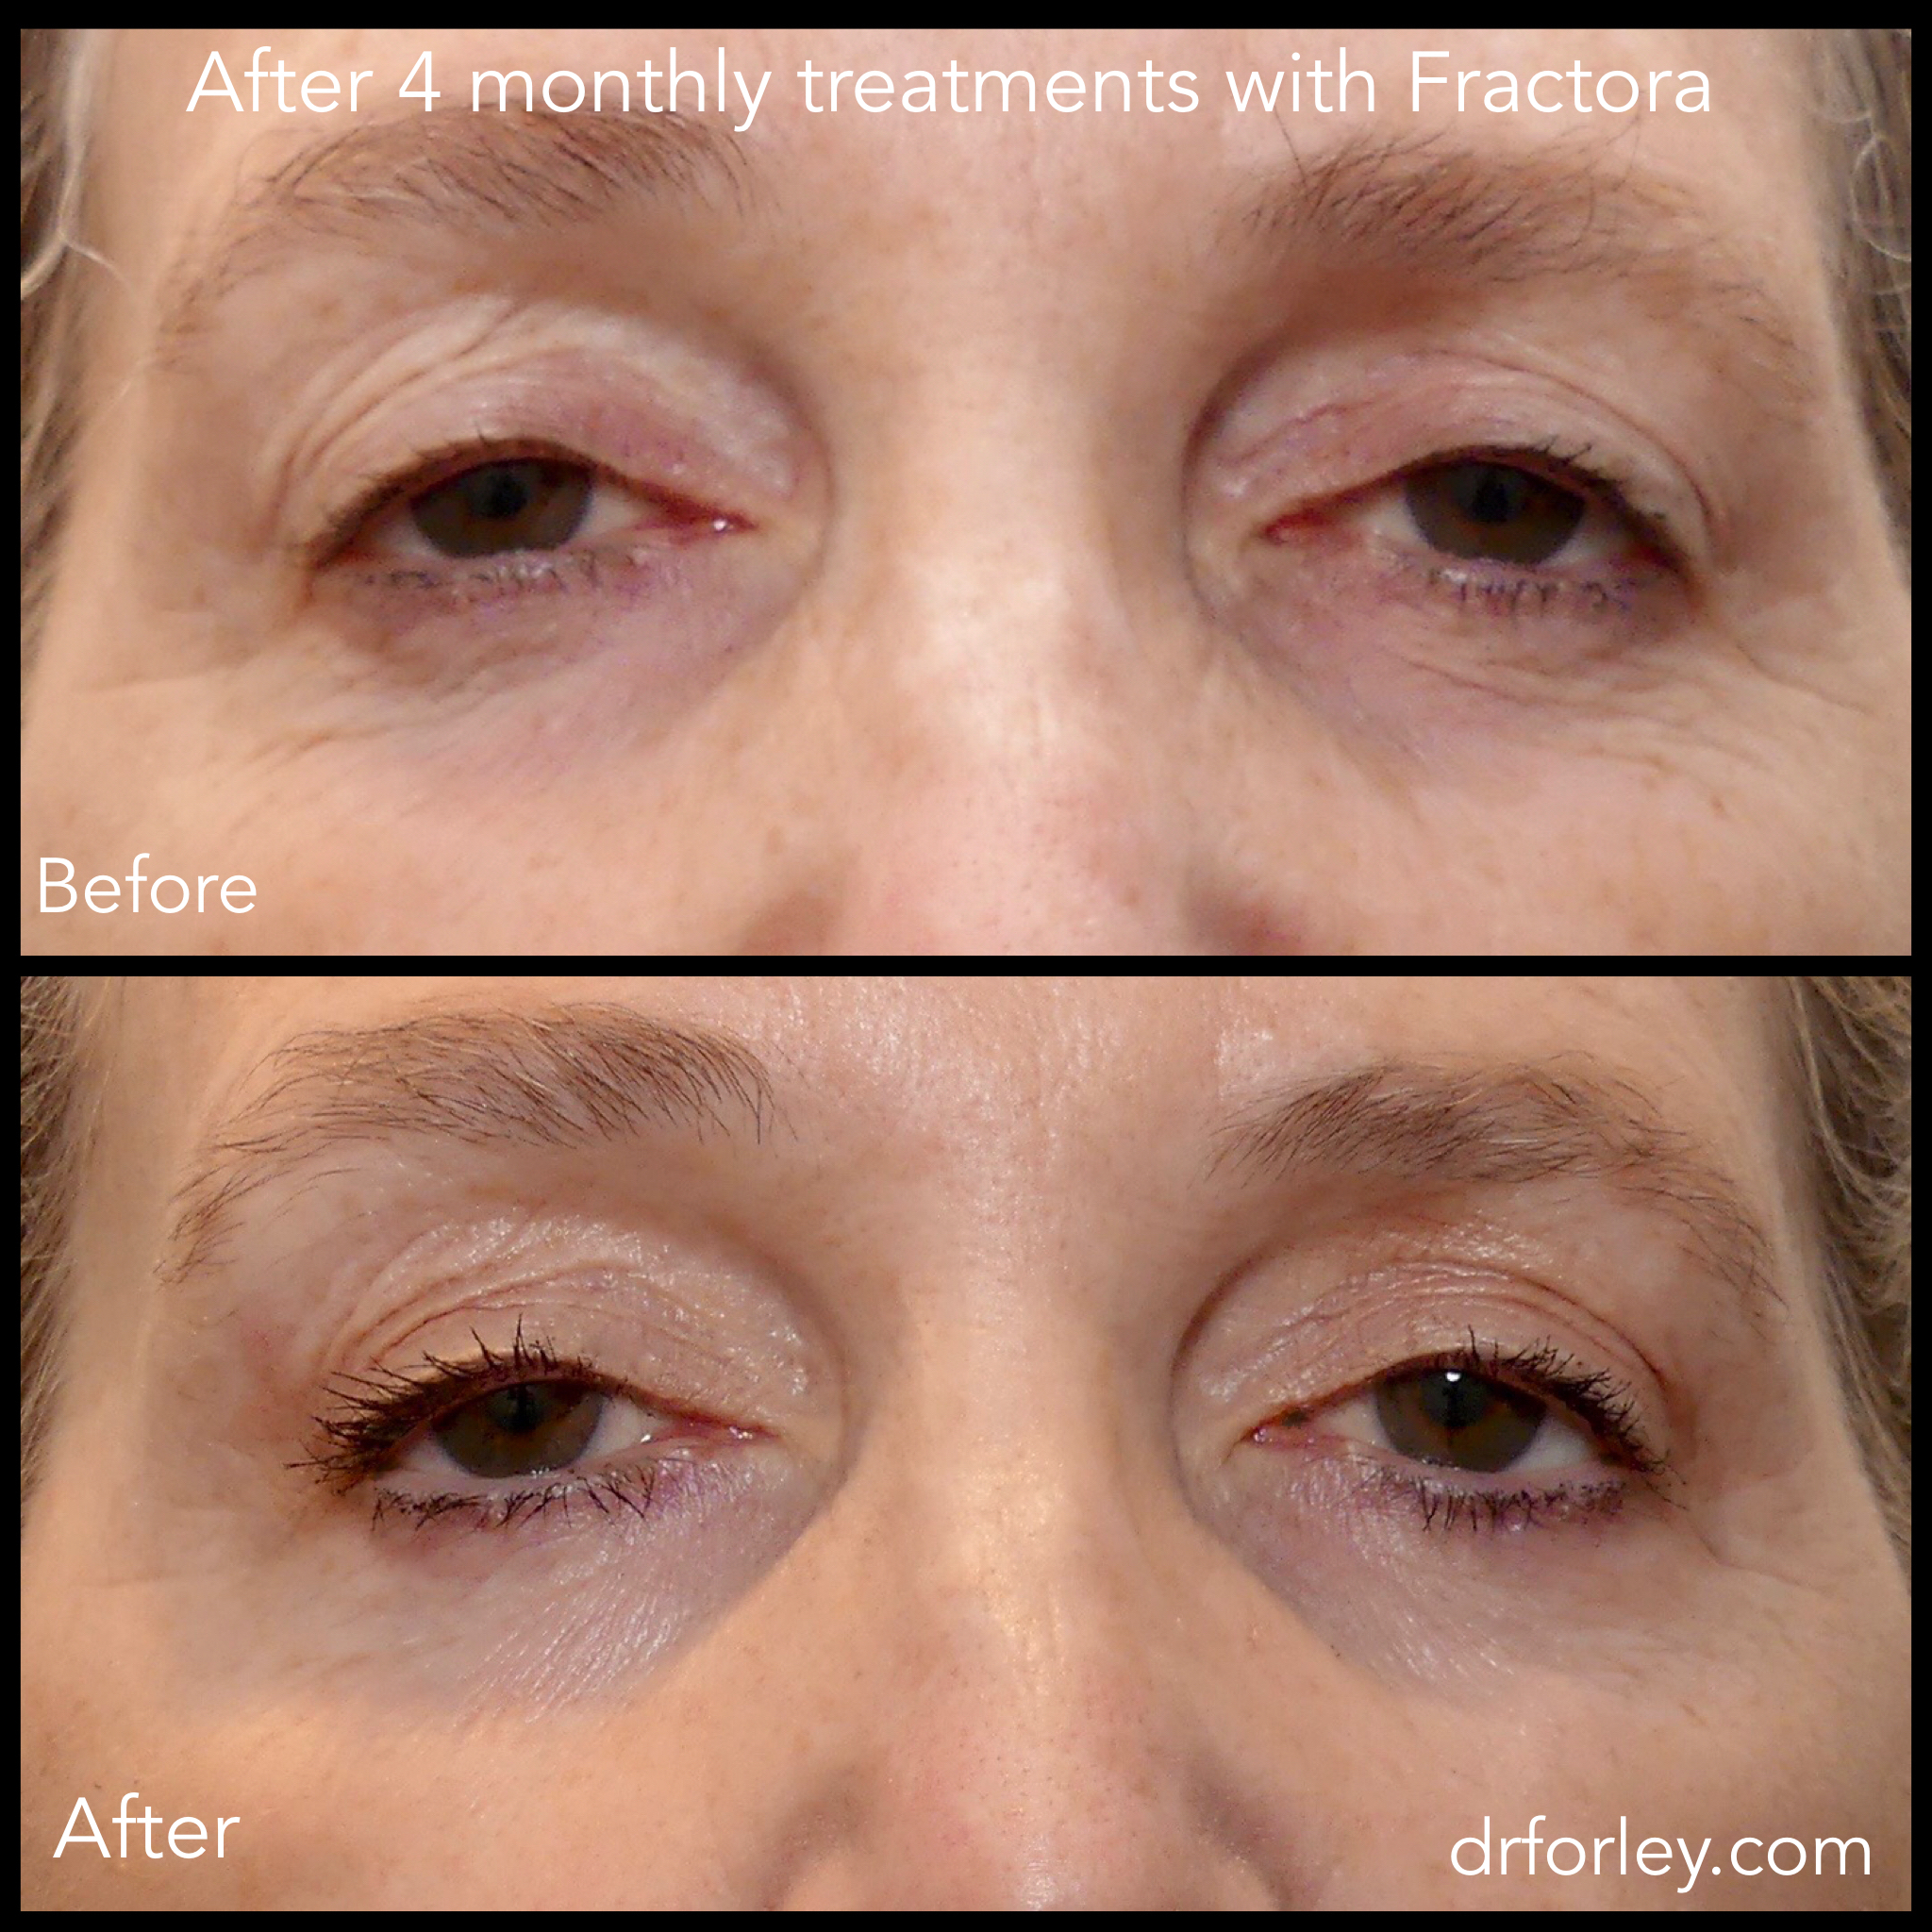 Woman's face, before and after 4 monthly treatments with Fractora (front view)